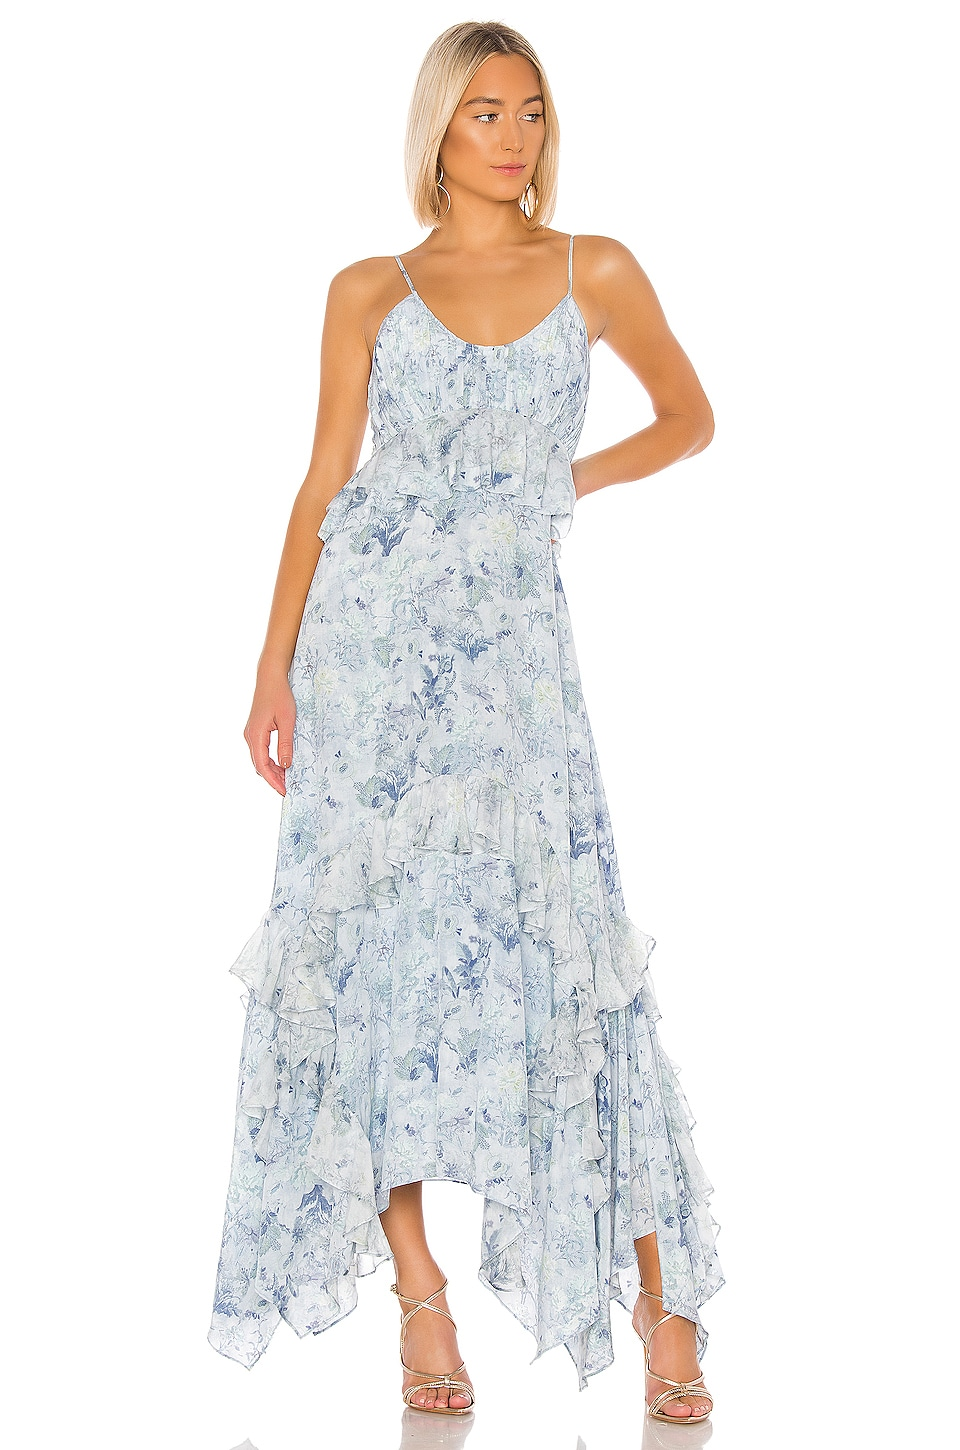 AMUR Promise Dress in Icy Blue